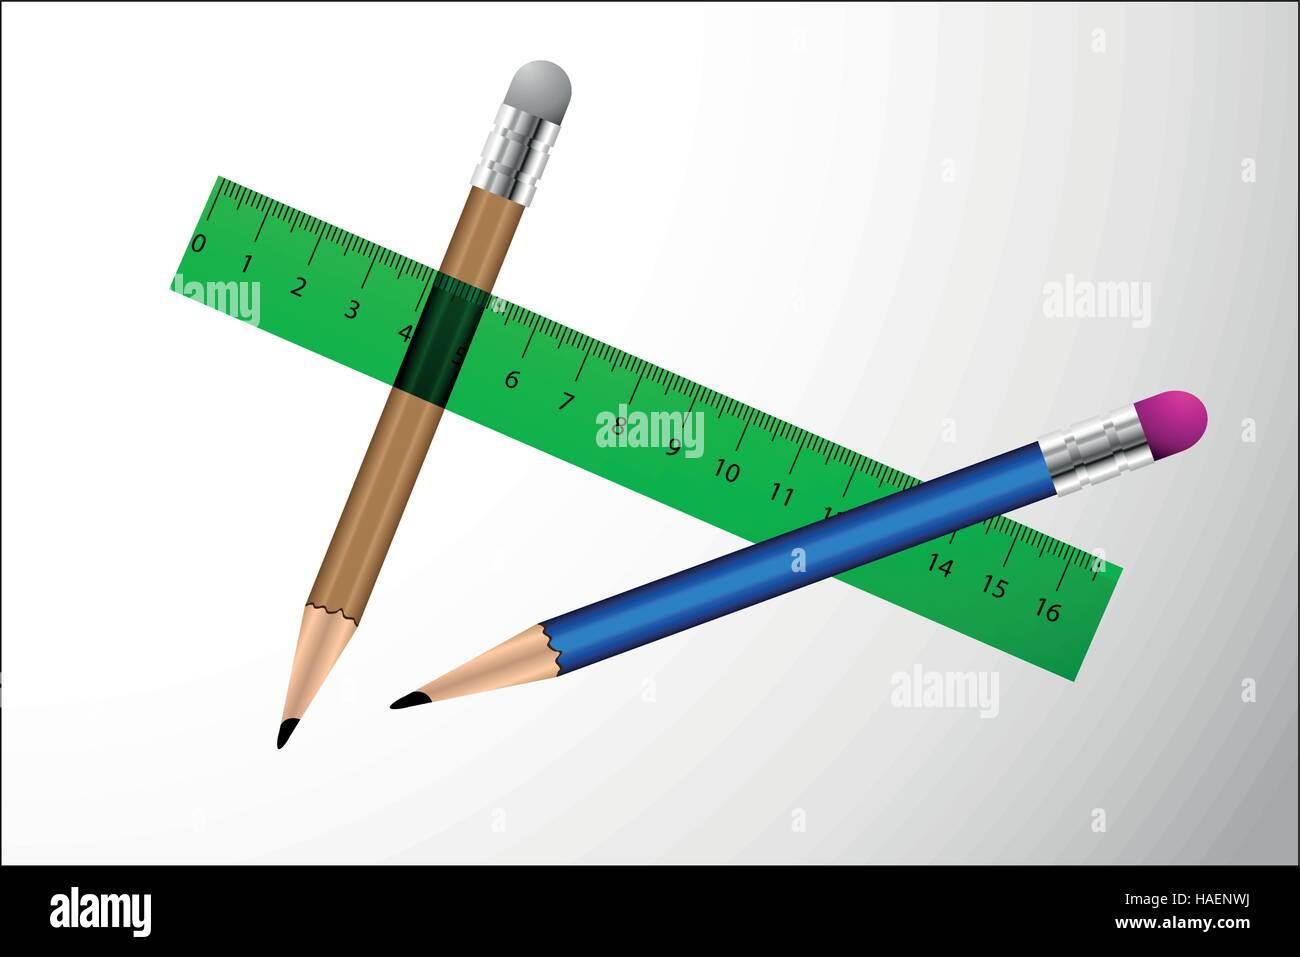 pencil, pencil with eraser, rulers - Stock Vector